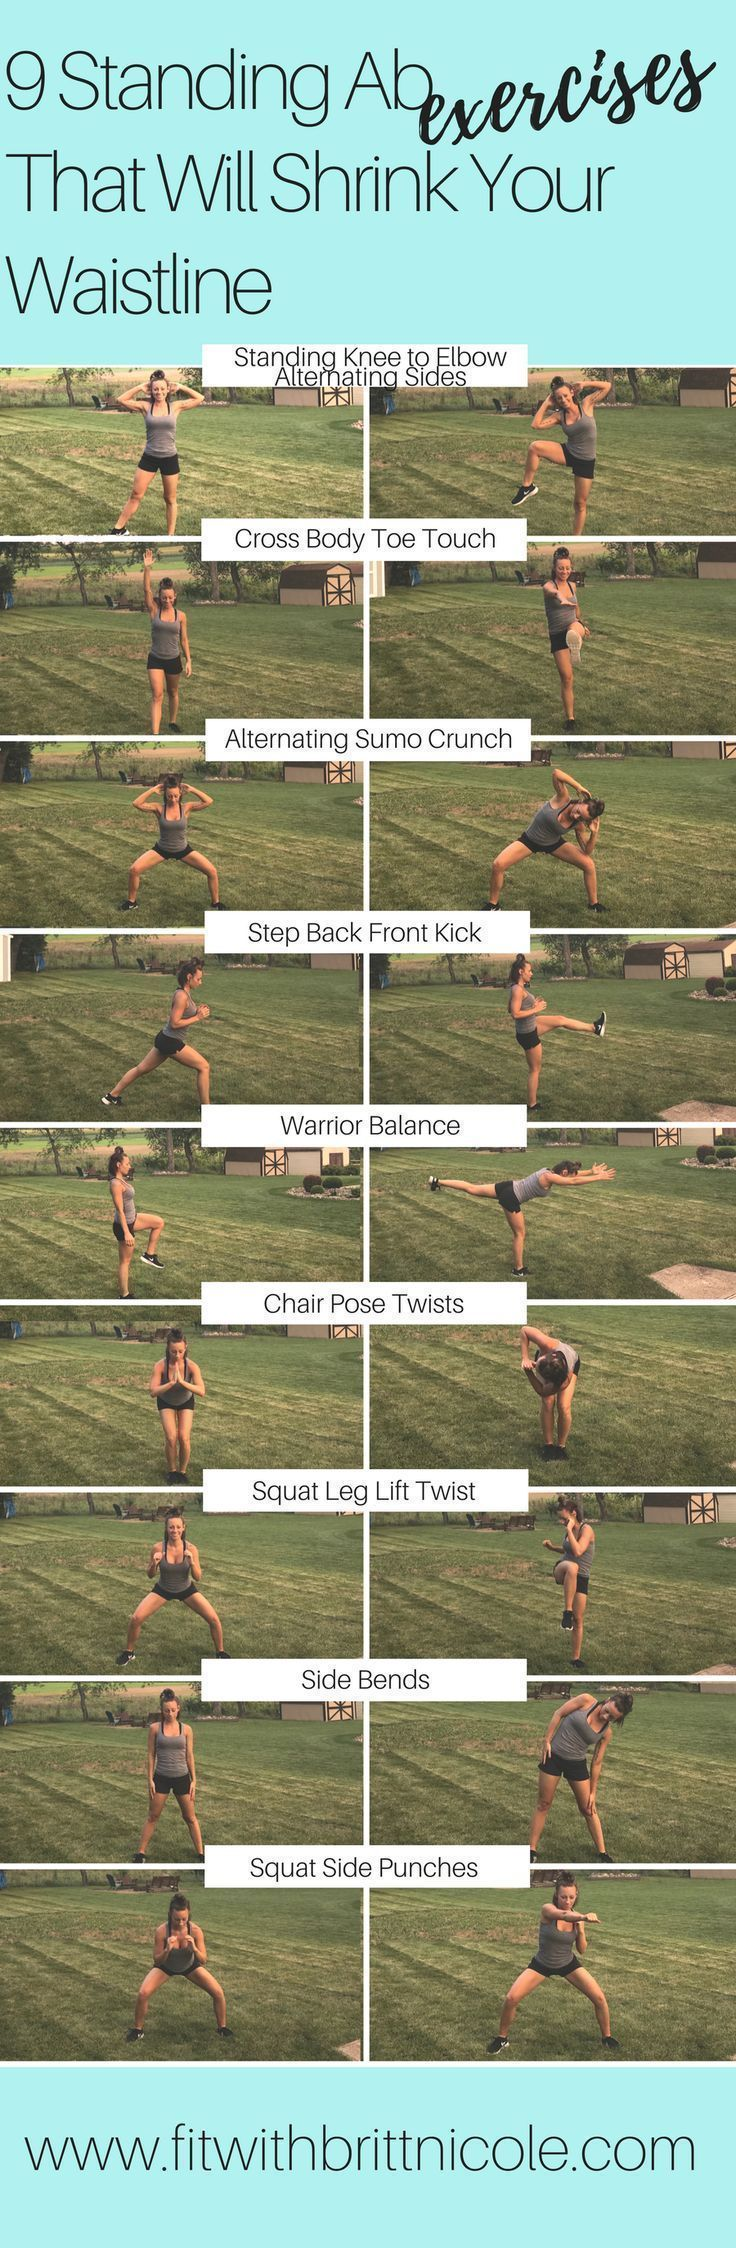 Get a great ab workout without ever touching the floor! Here are 9 amazing standing ab exercises that will shrink your waistline!   Posted By: NewHowToLoseBellyFat.com #FITNESSMOTIVATION